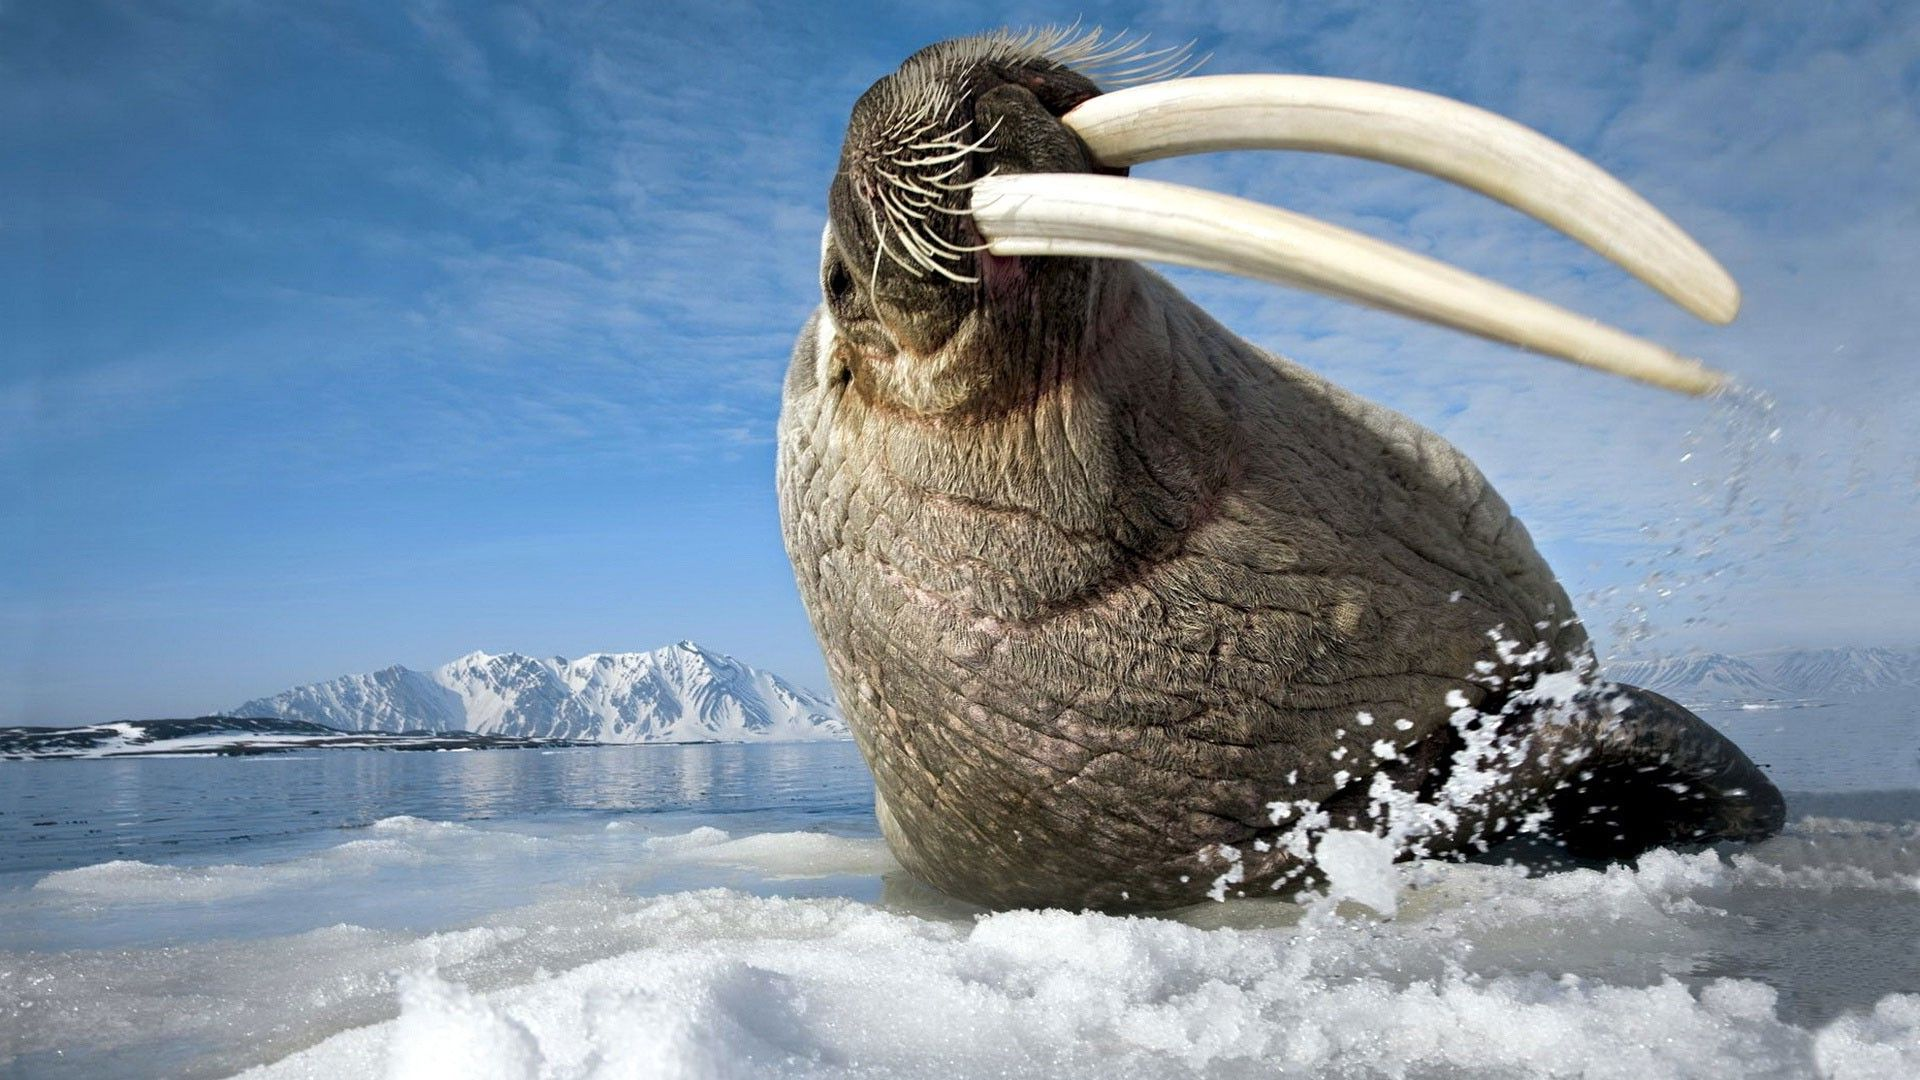 Walrus wallpaper hd animals that love the cold environments